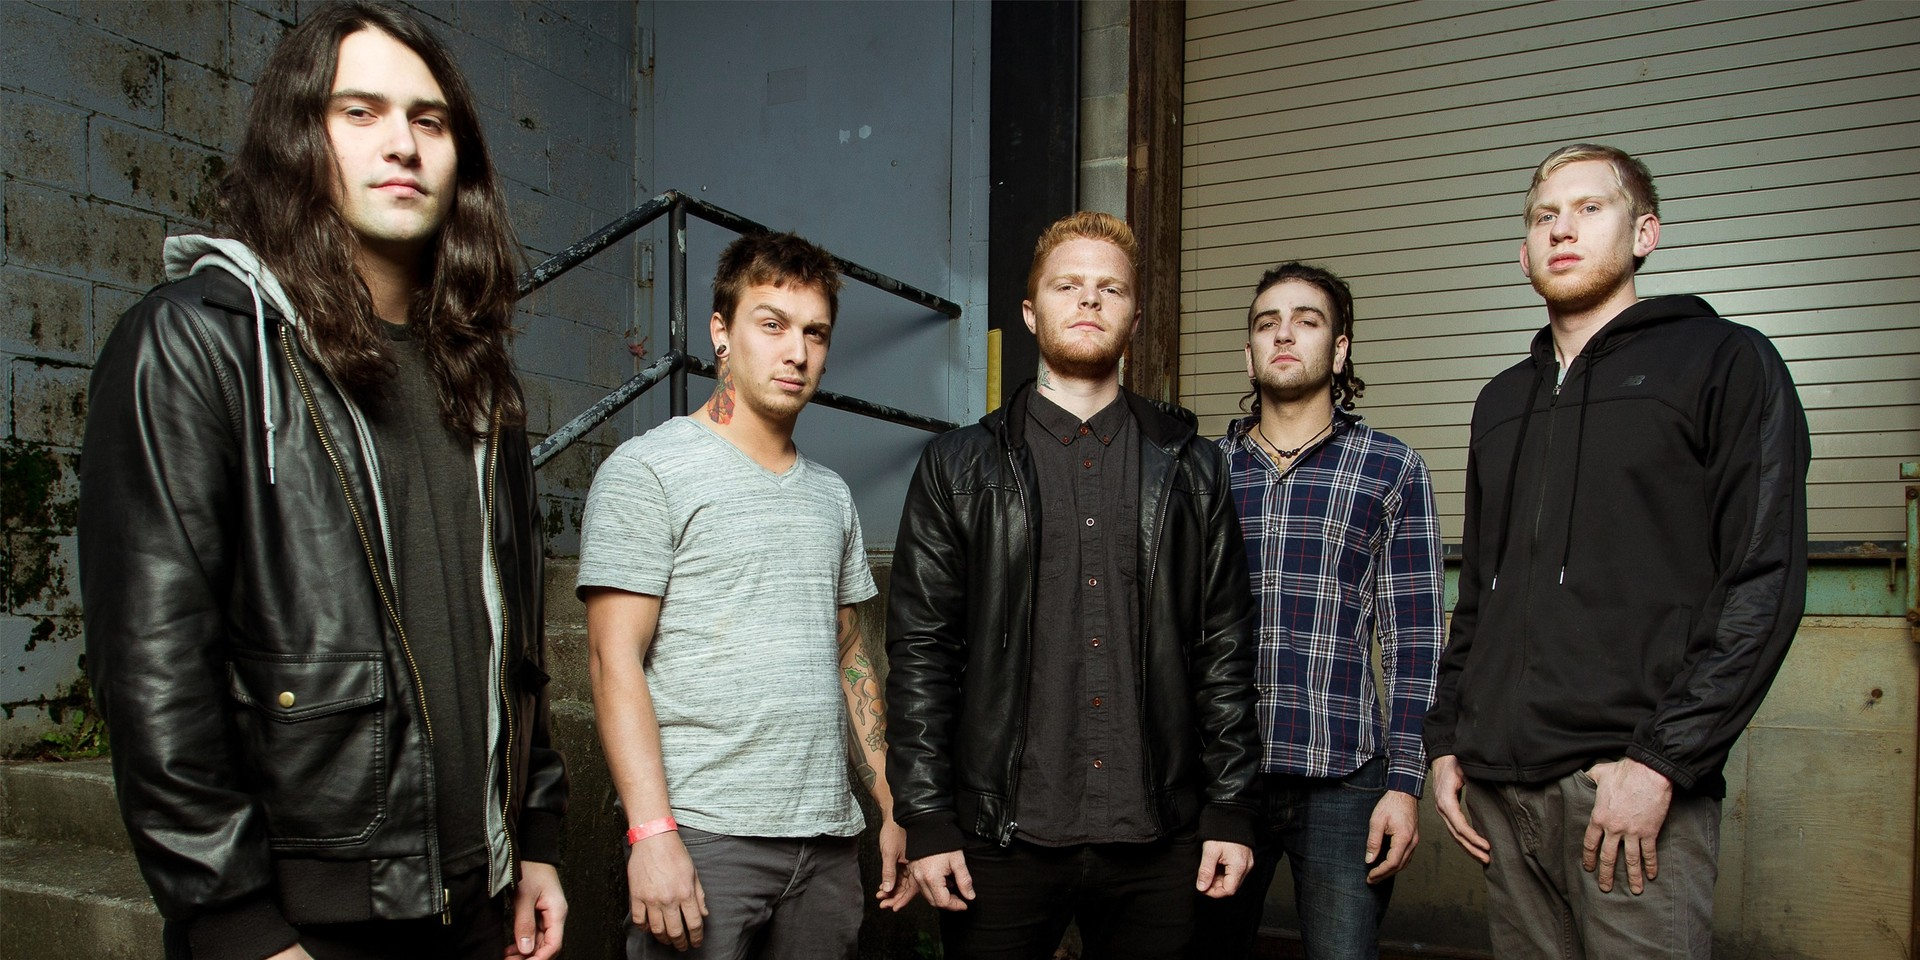 American metalcore band Born of Osiris cancels Singapore gig due to immigration issues